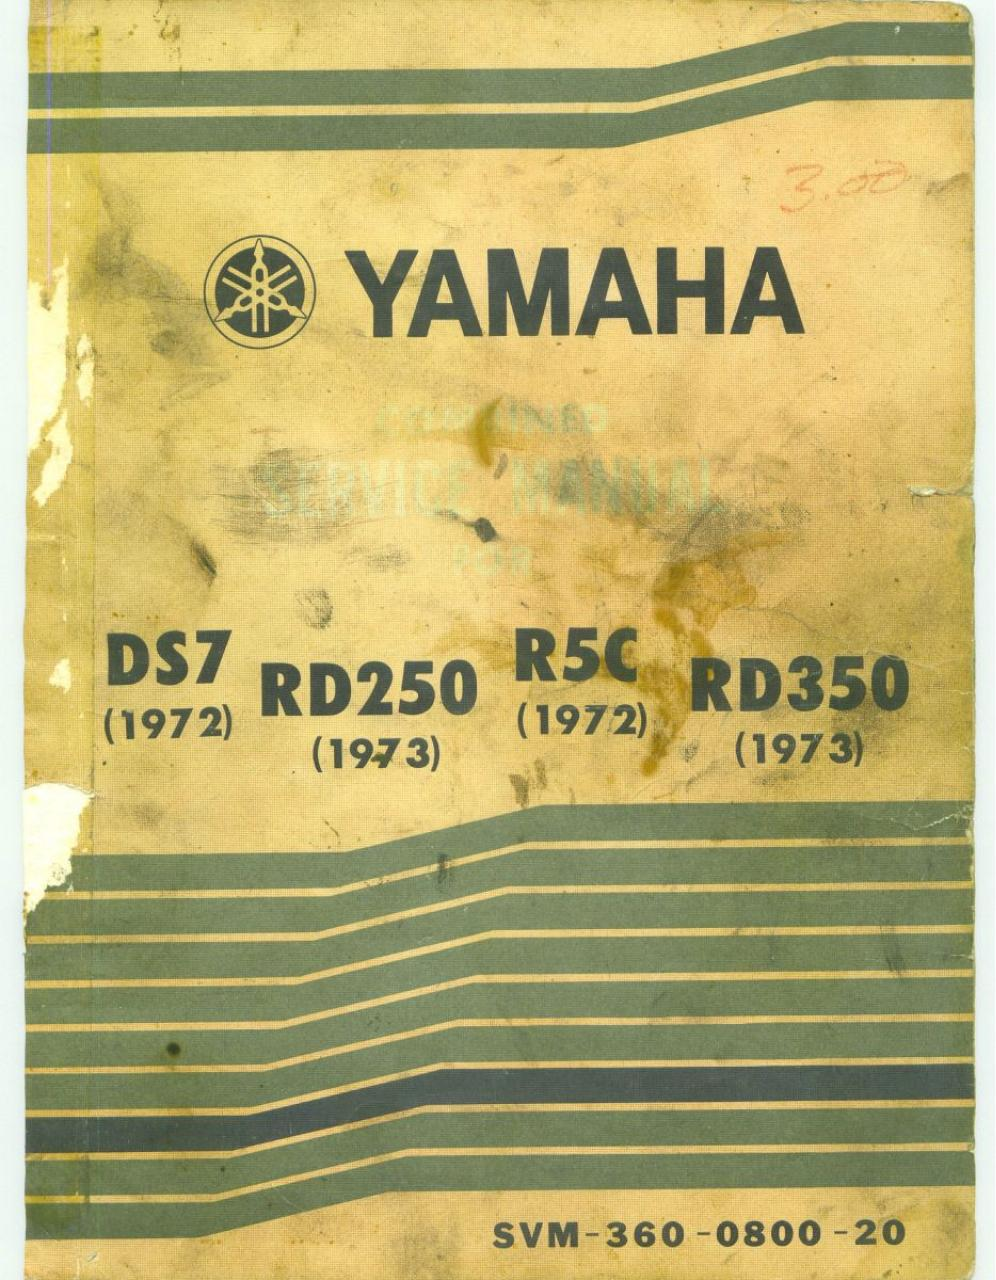 Yamaha Rd 250 Ds7 350 r5C 72-73 Service Manual English.pdf - page